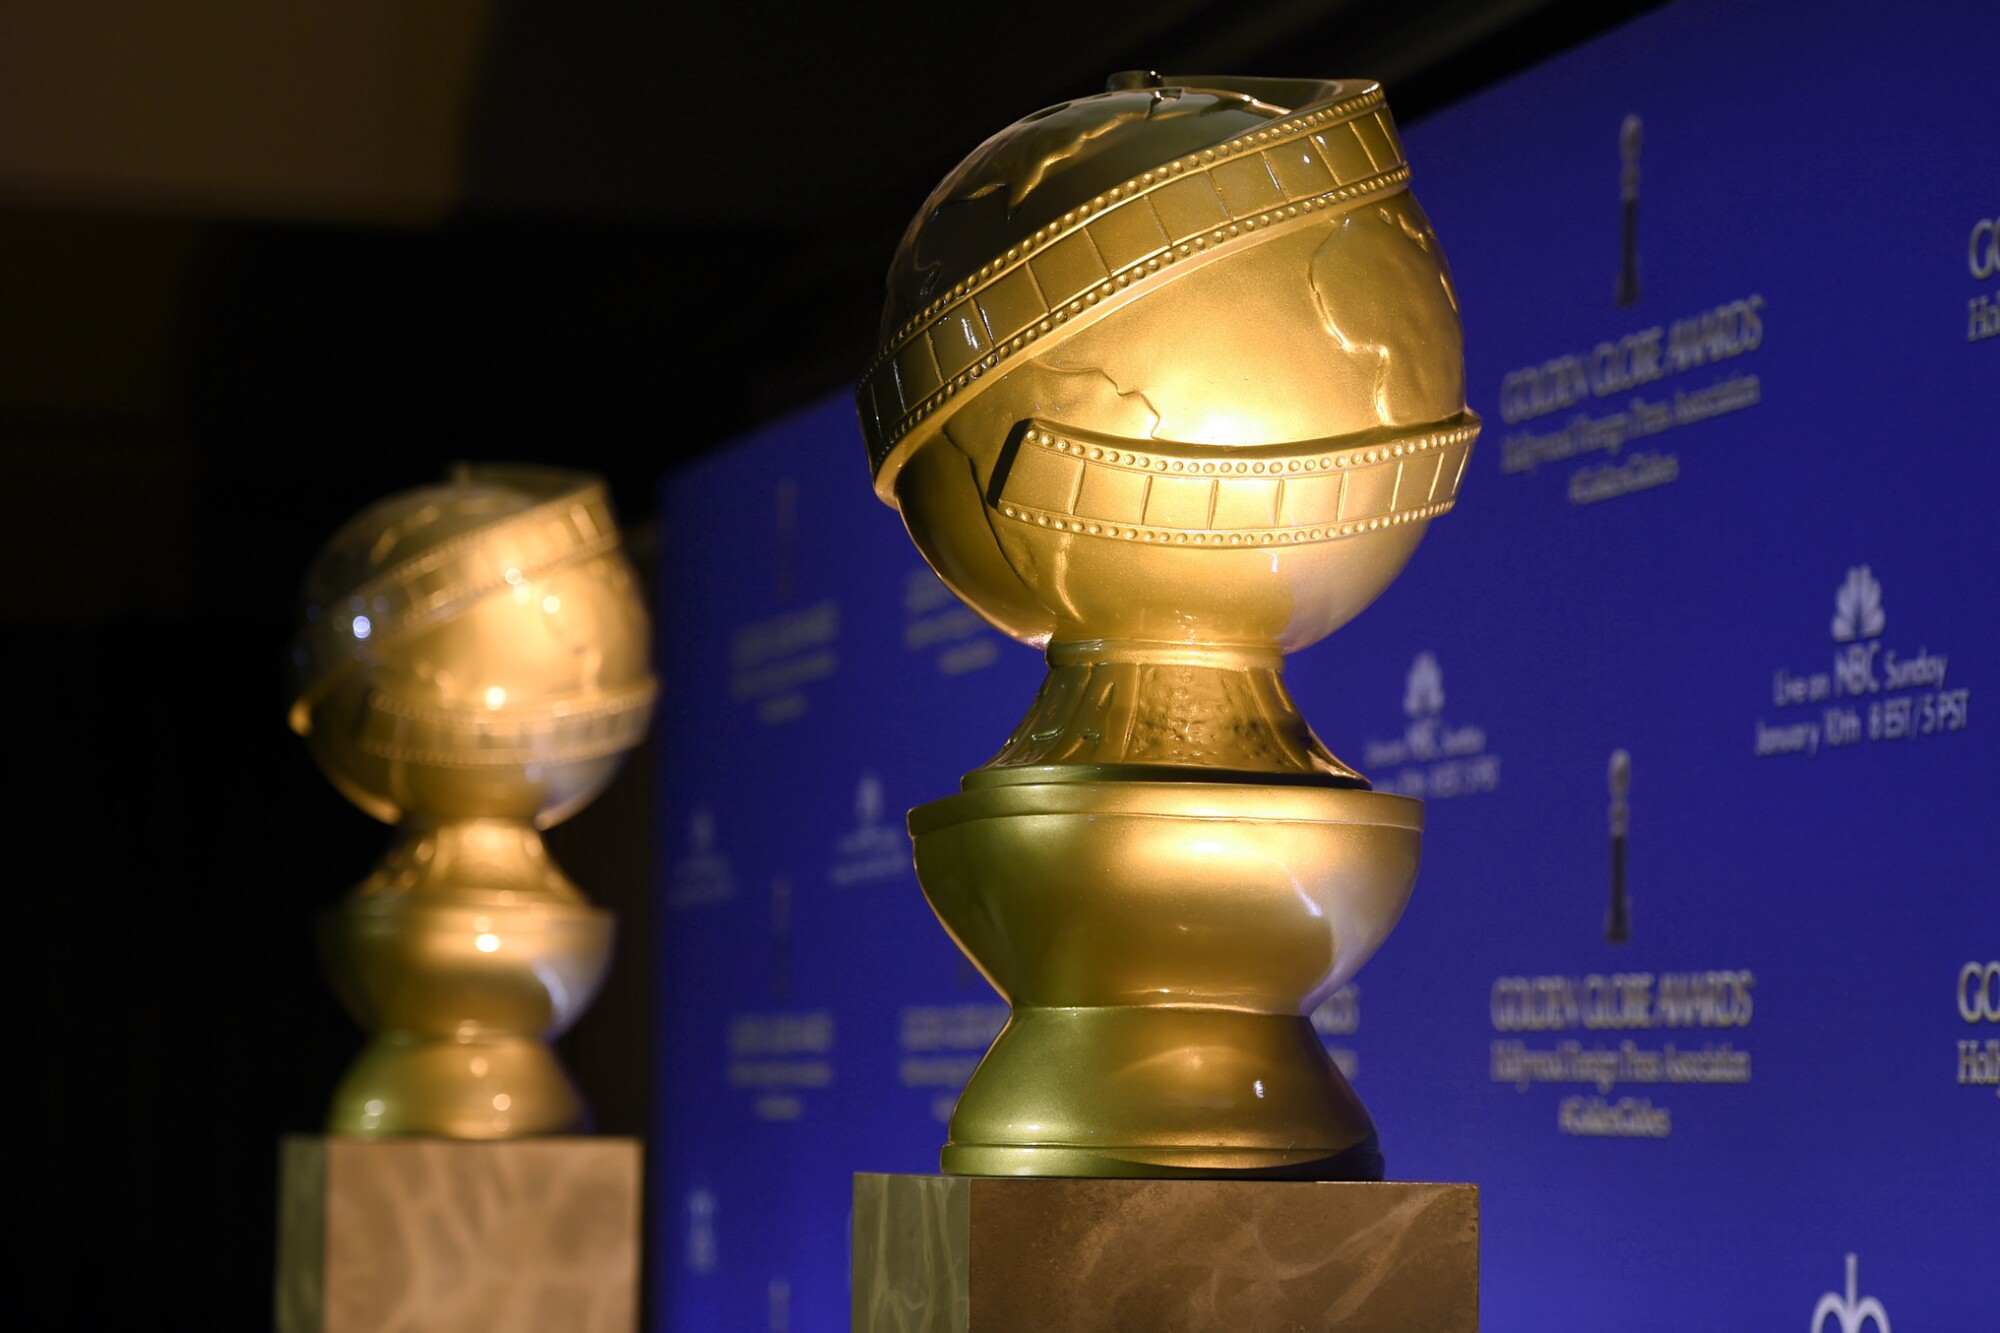 Replicas of Golden Globe statuettes against a blue backdrop